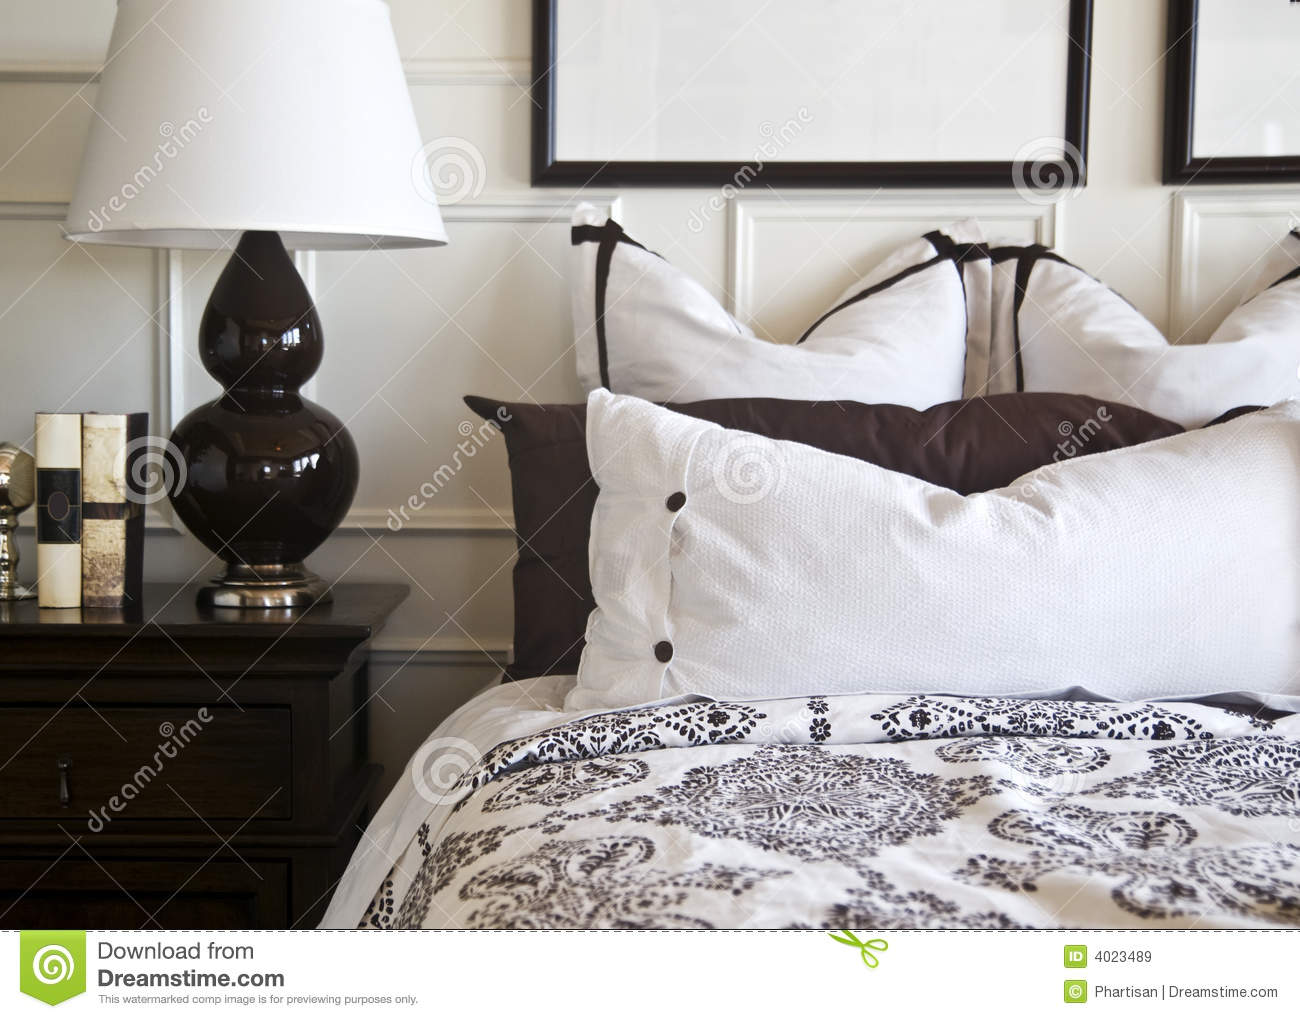 stilvolles schlafzimmer innenarchitektur stockbild bild. Black Bedroom Furniture Sets. Home Design Ideas